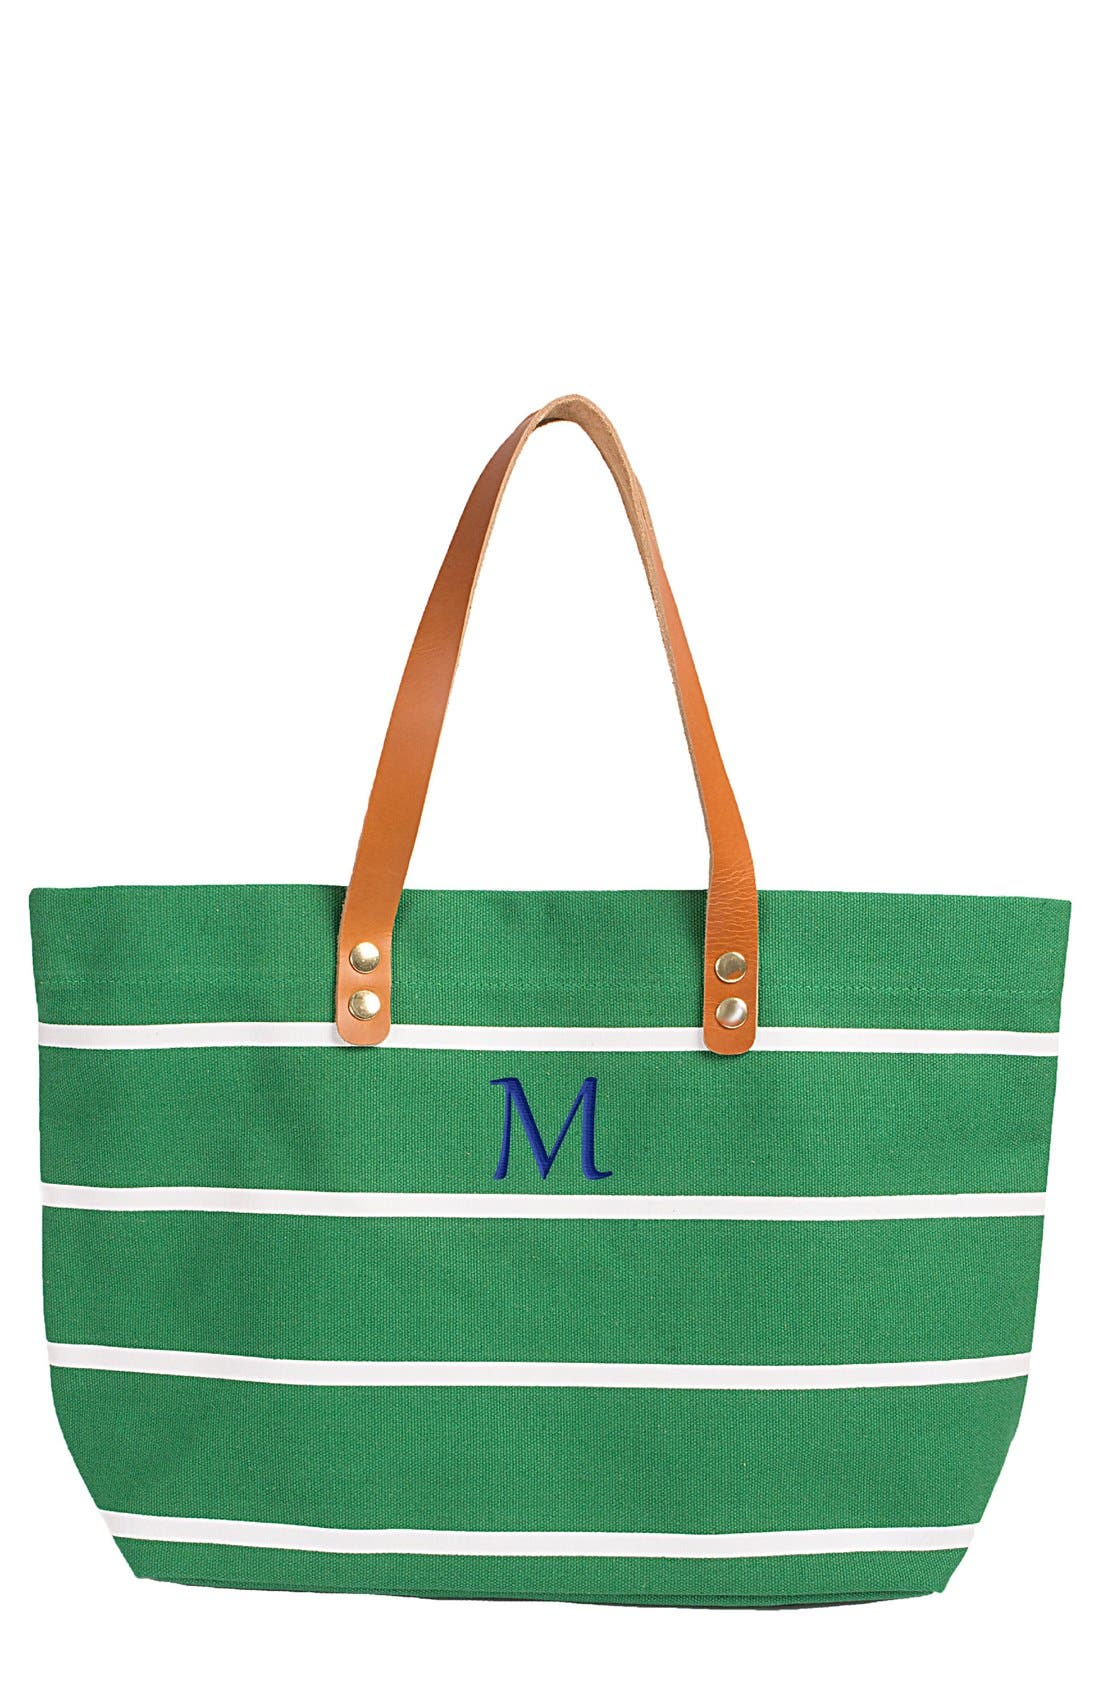 Main Image - Cathy's Concepts Monogram Stripe Tote